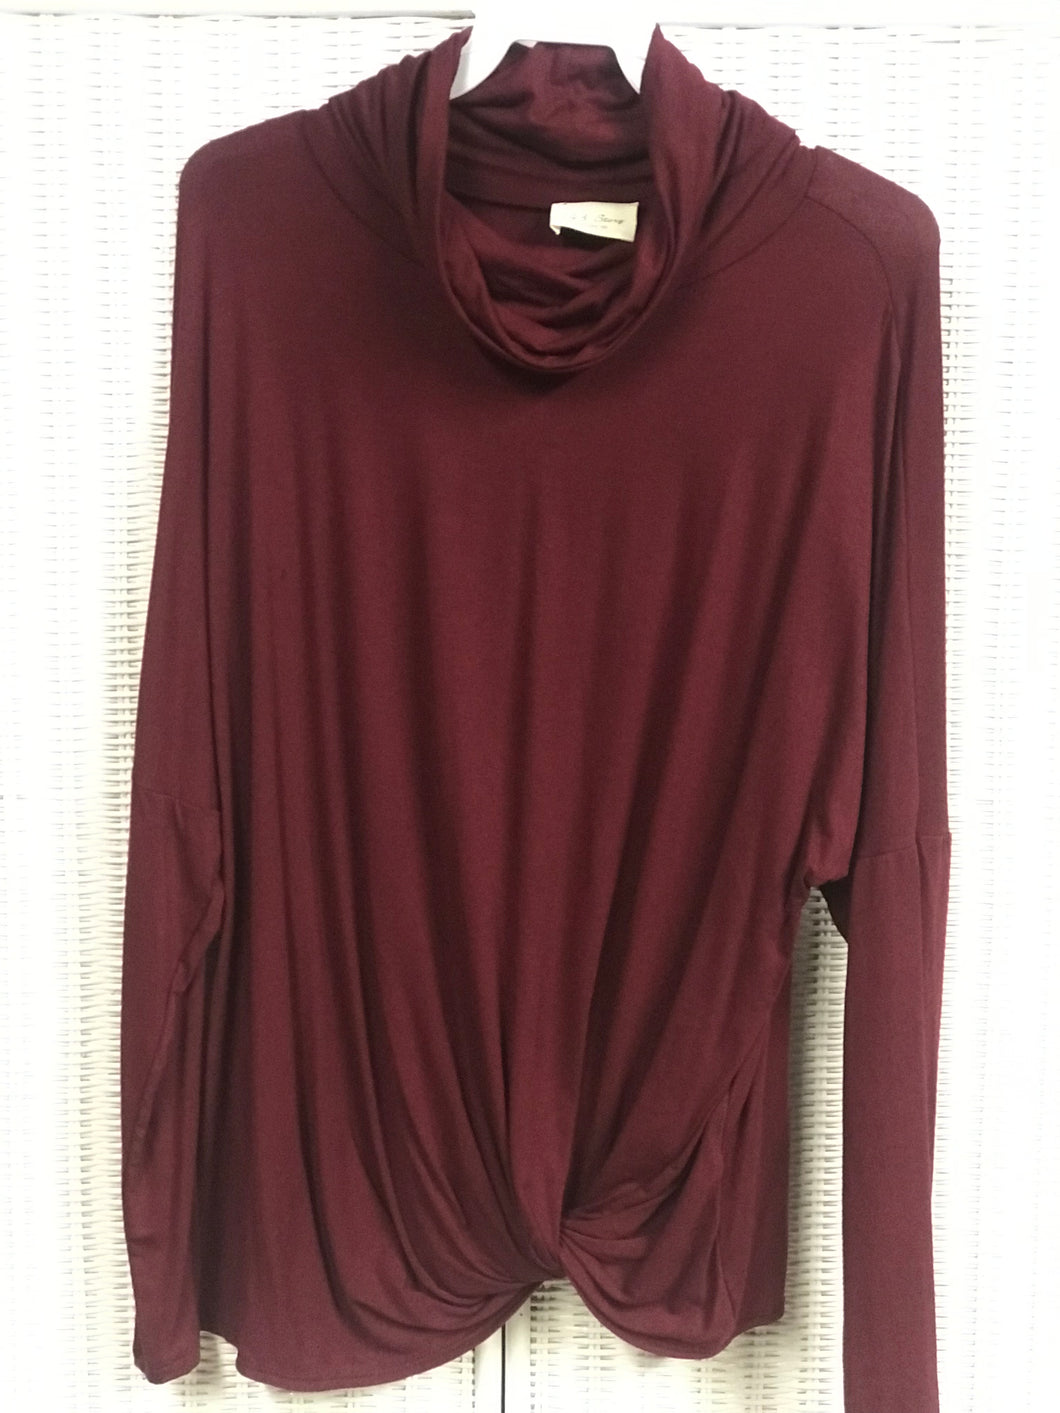 Burgundy Turtle Neck with side knot